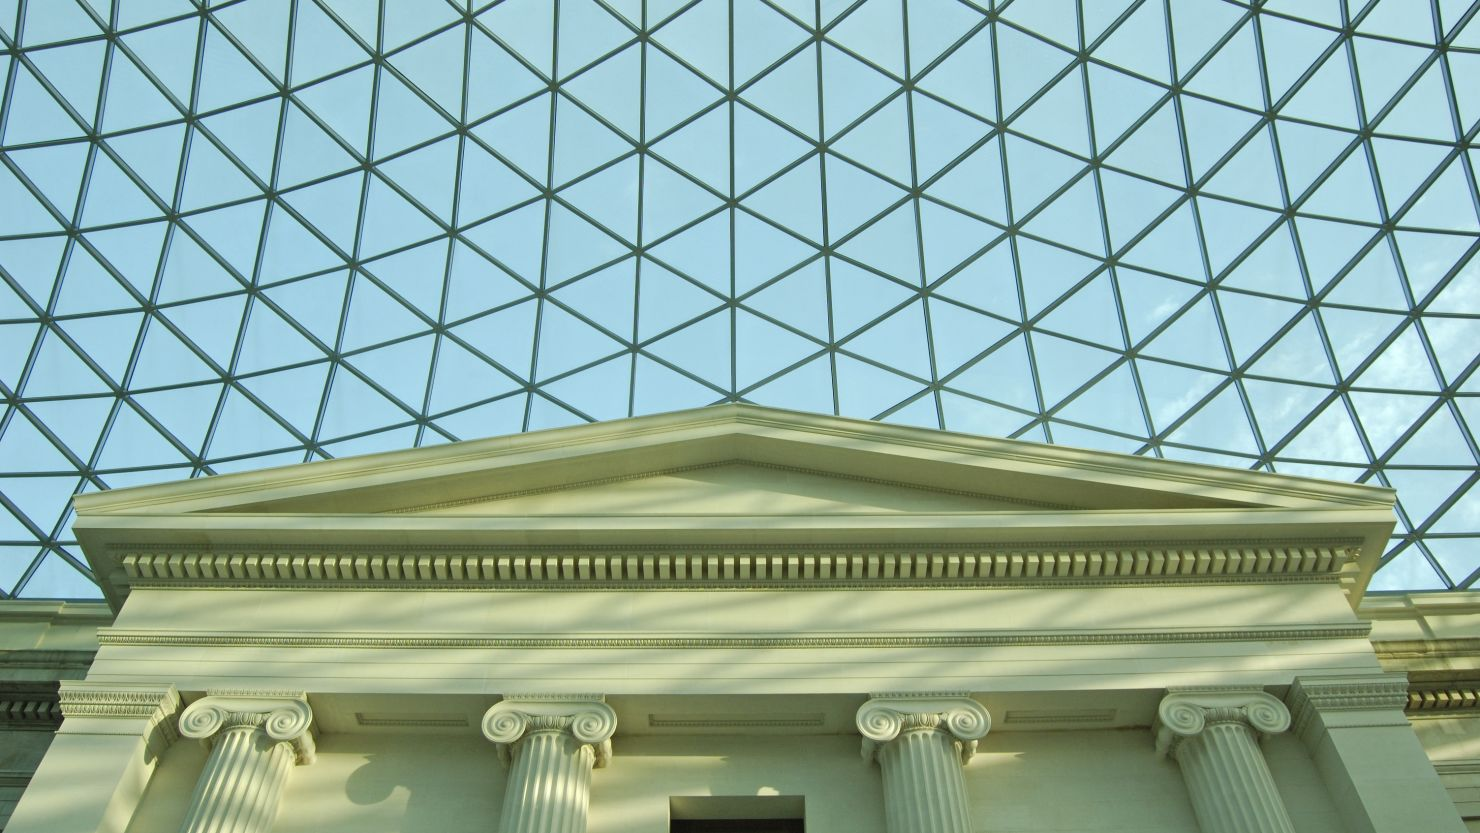 The atrium of the British Museum in London